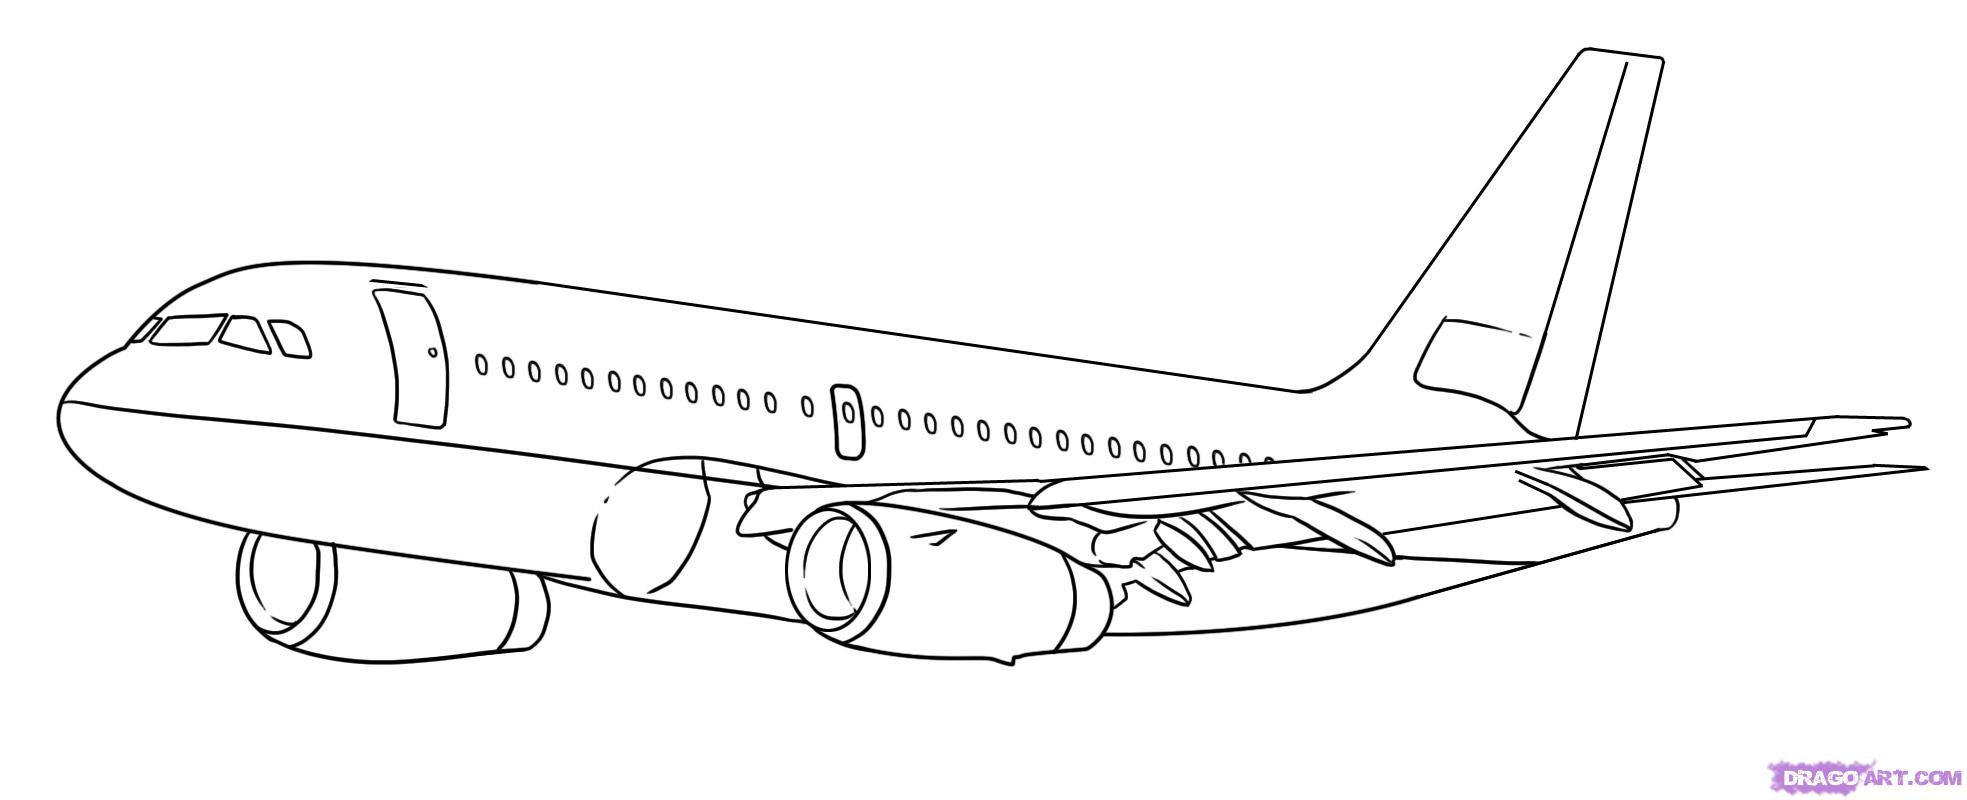 Drawn airplane black and white Drawing Pinterest drawing Google Google